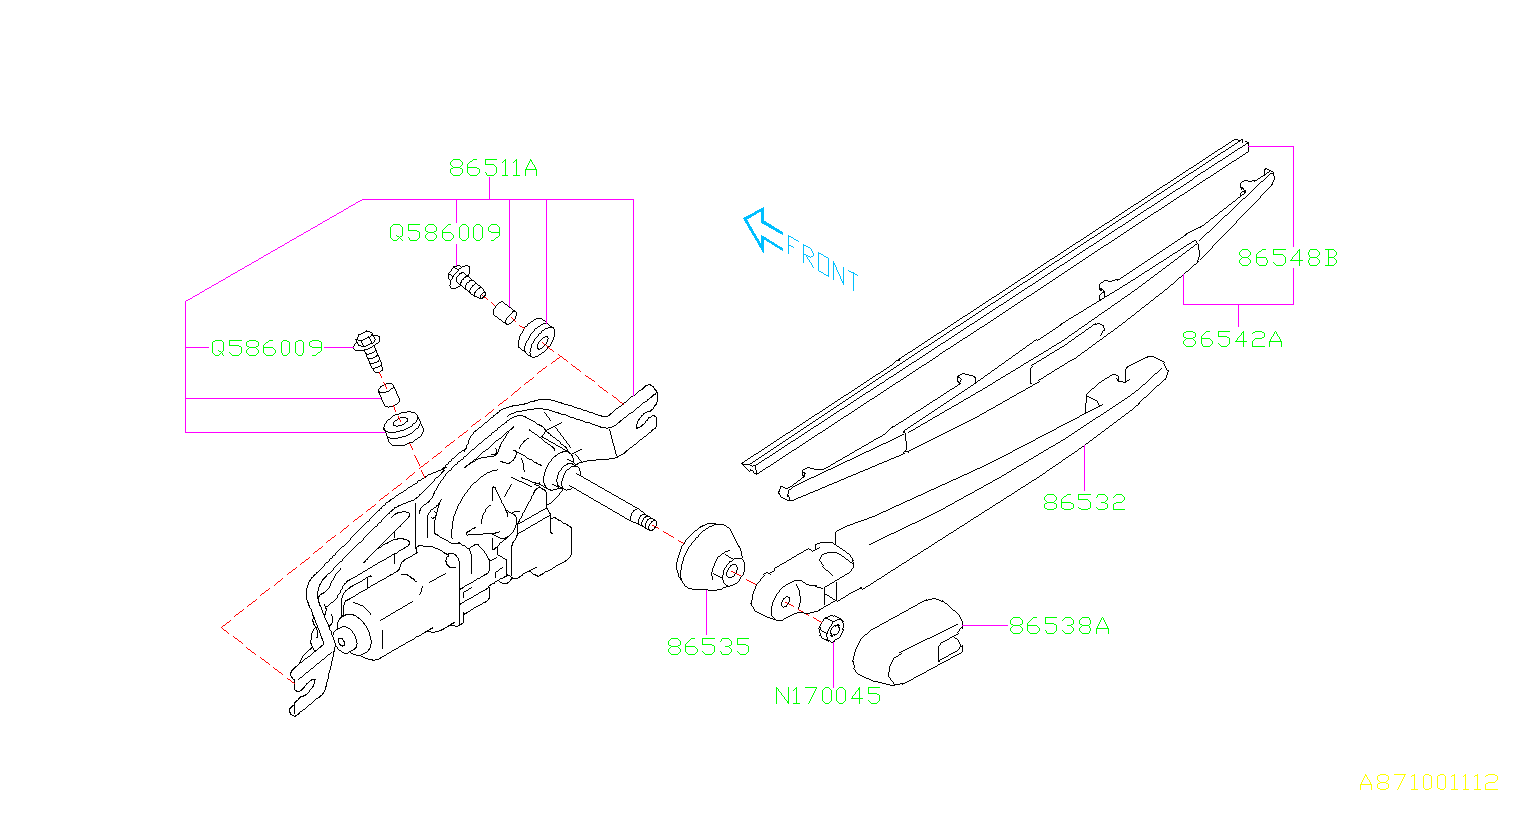 2008 Subaru WRX Blade assembly-rear wiper. Maintenance